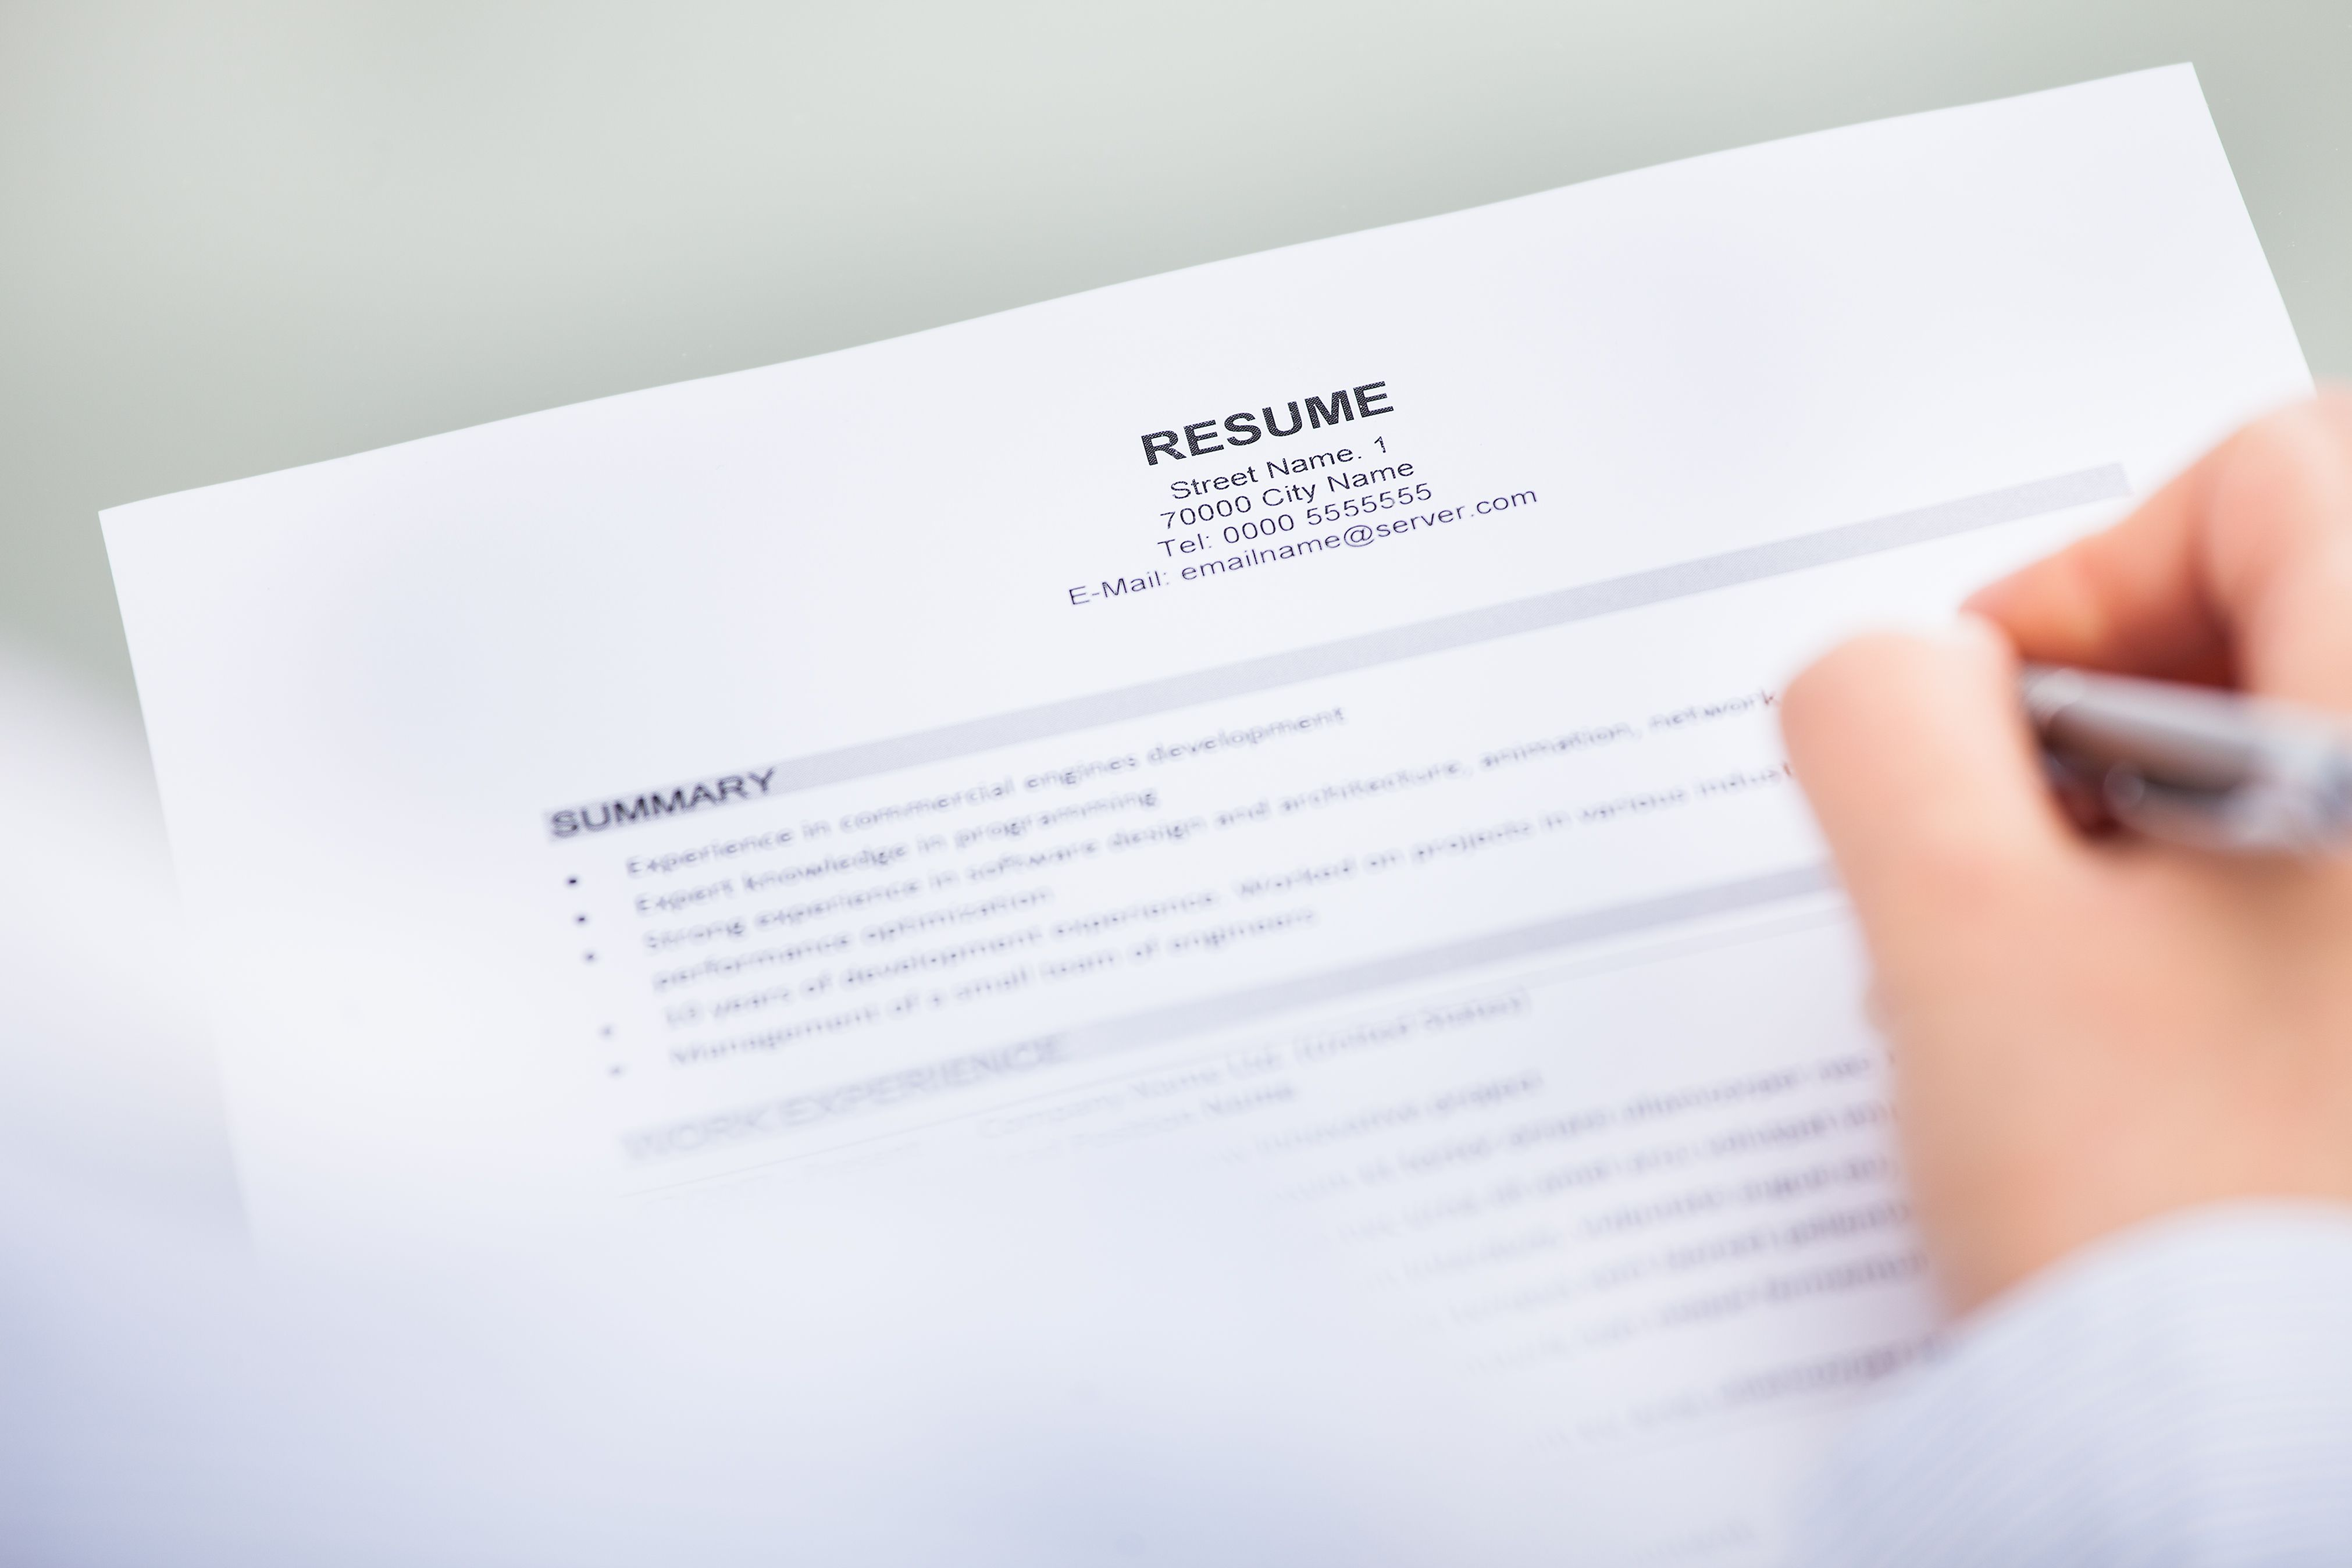 Resume Writing A Complete Guide for Job